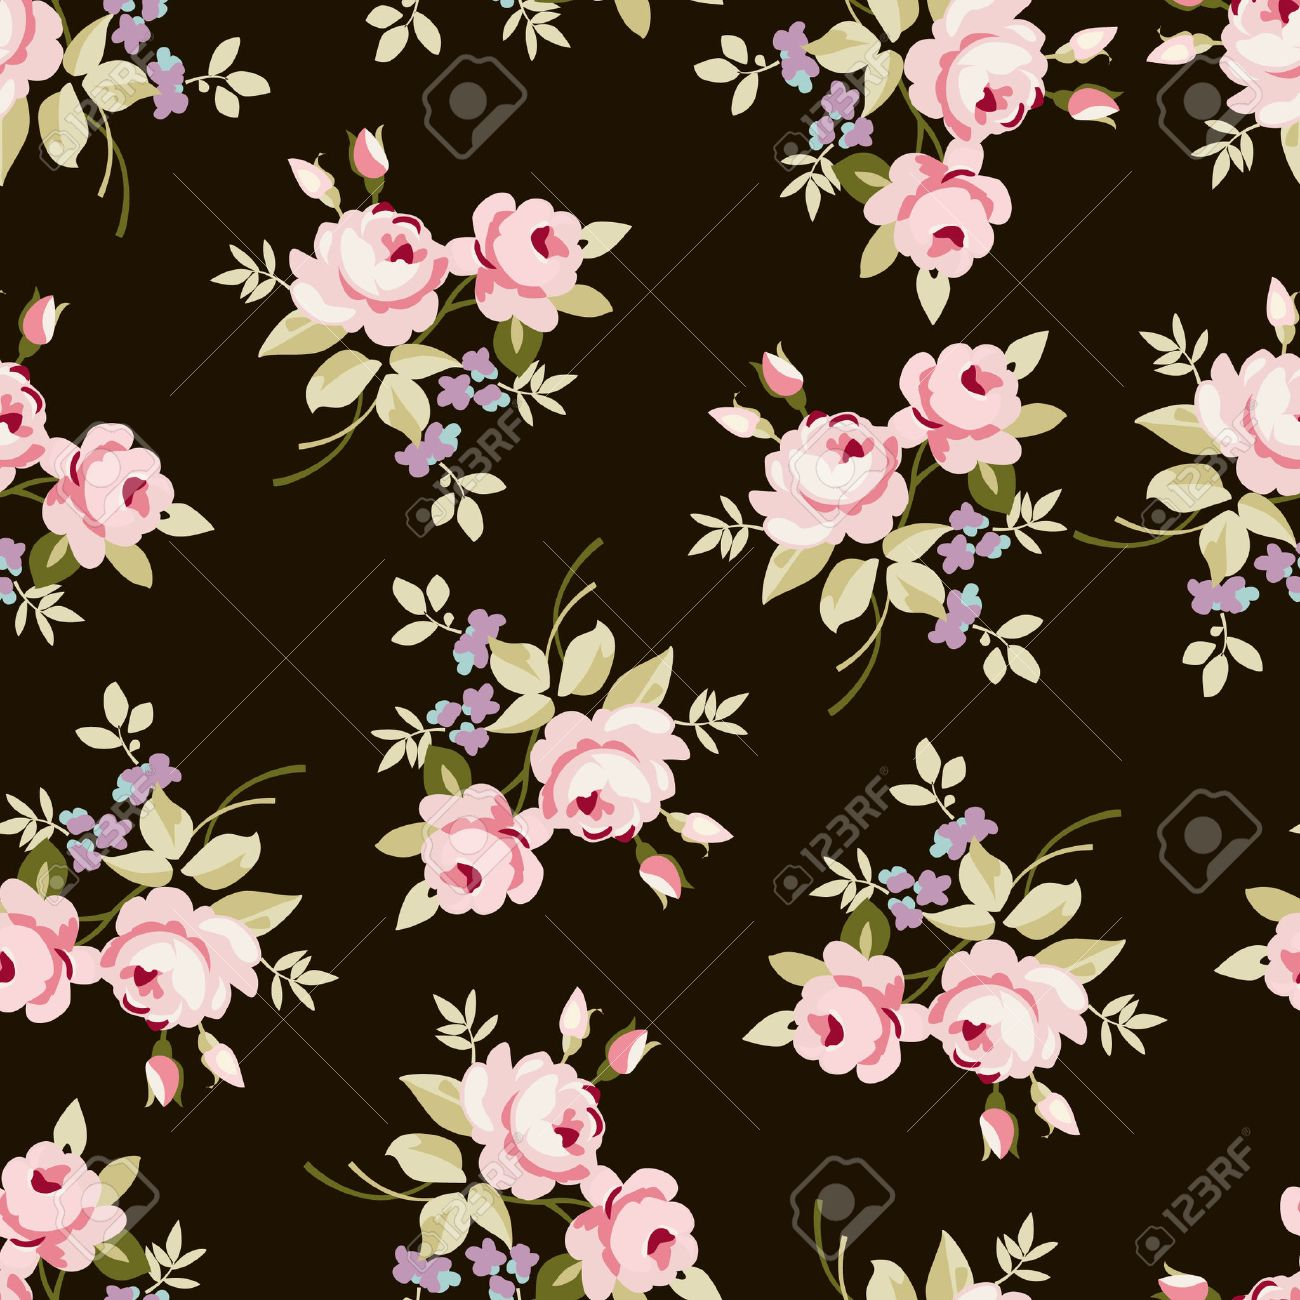 Seamless Floral Pattern With Little Pink Roses On Black